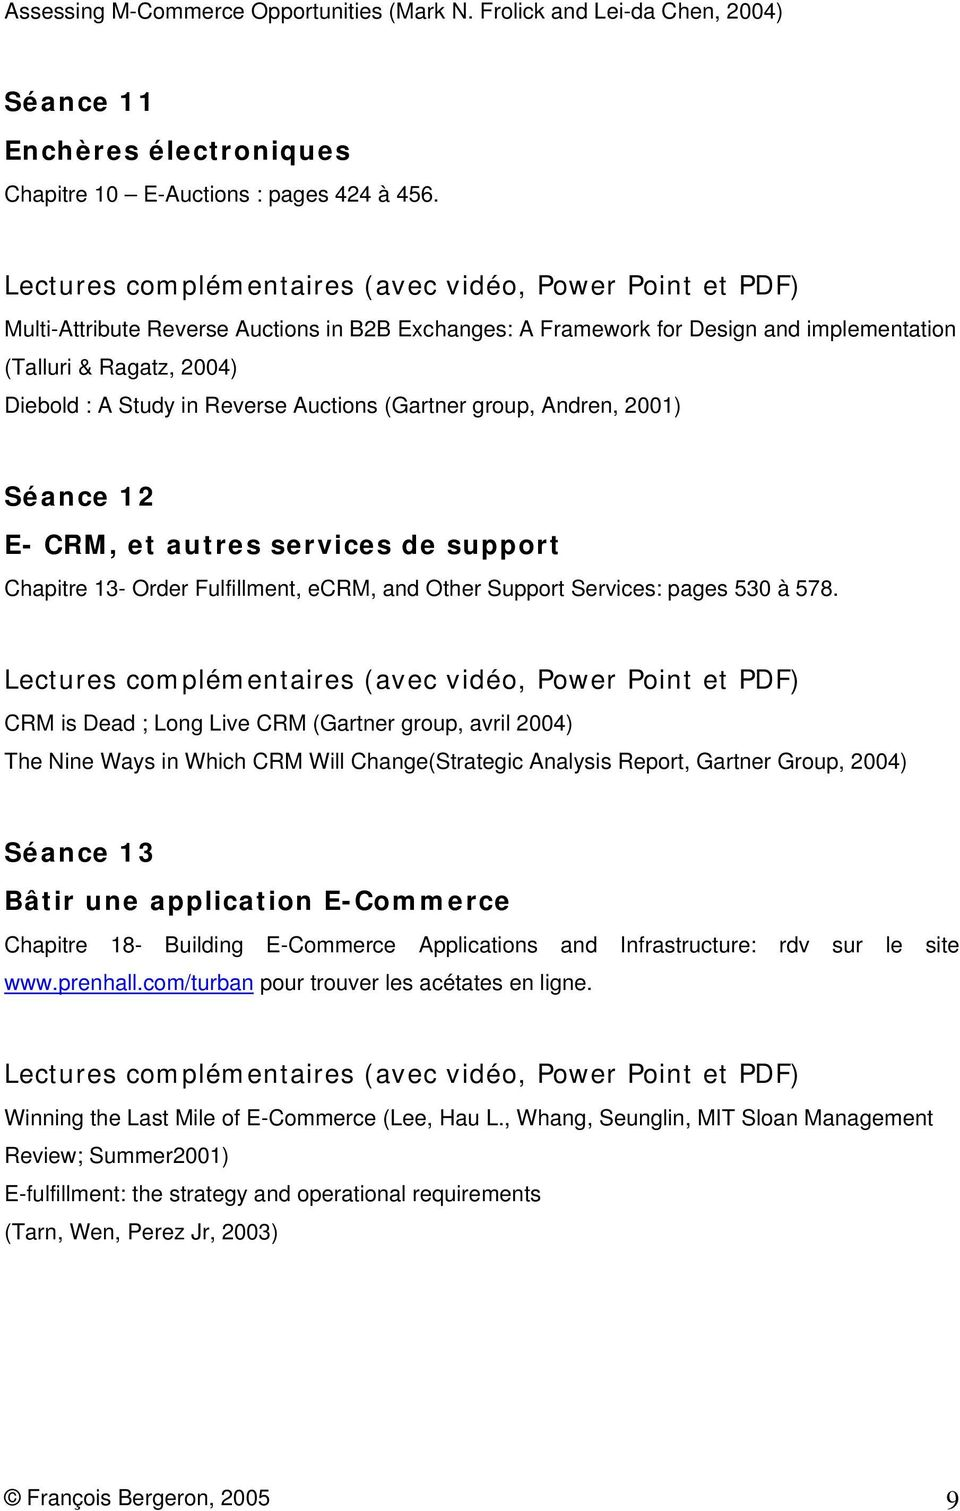 CRM, et autres services de support Chapitre 13- Order Fulfillment, ecrm, and Other Support Services: pages 530 à 578.